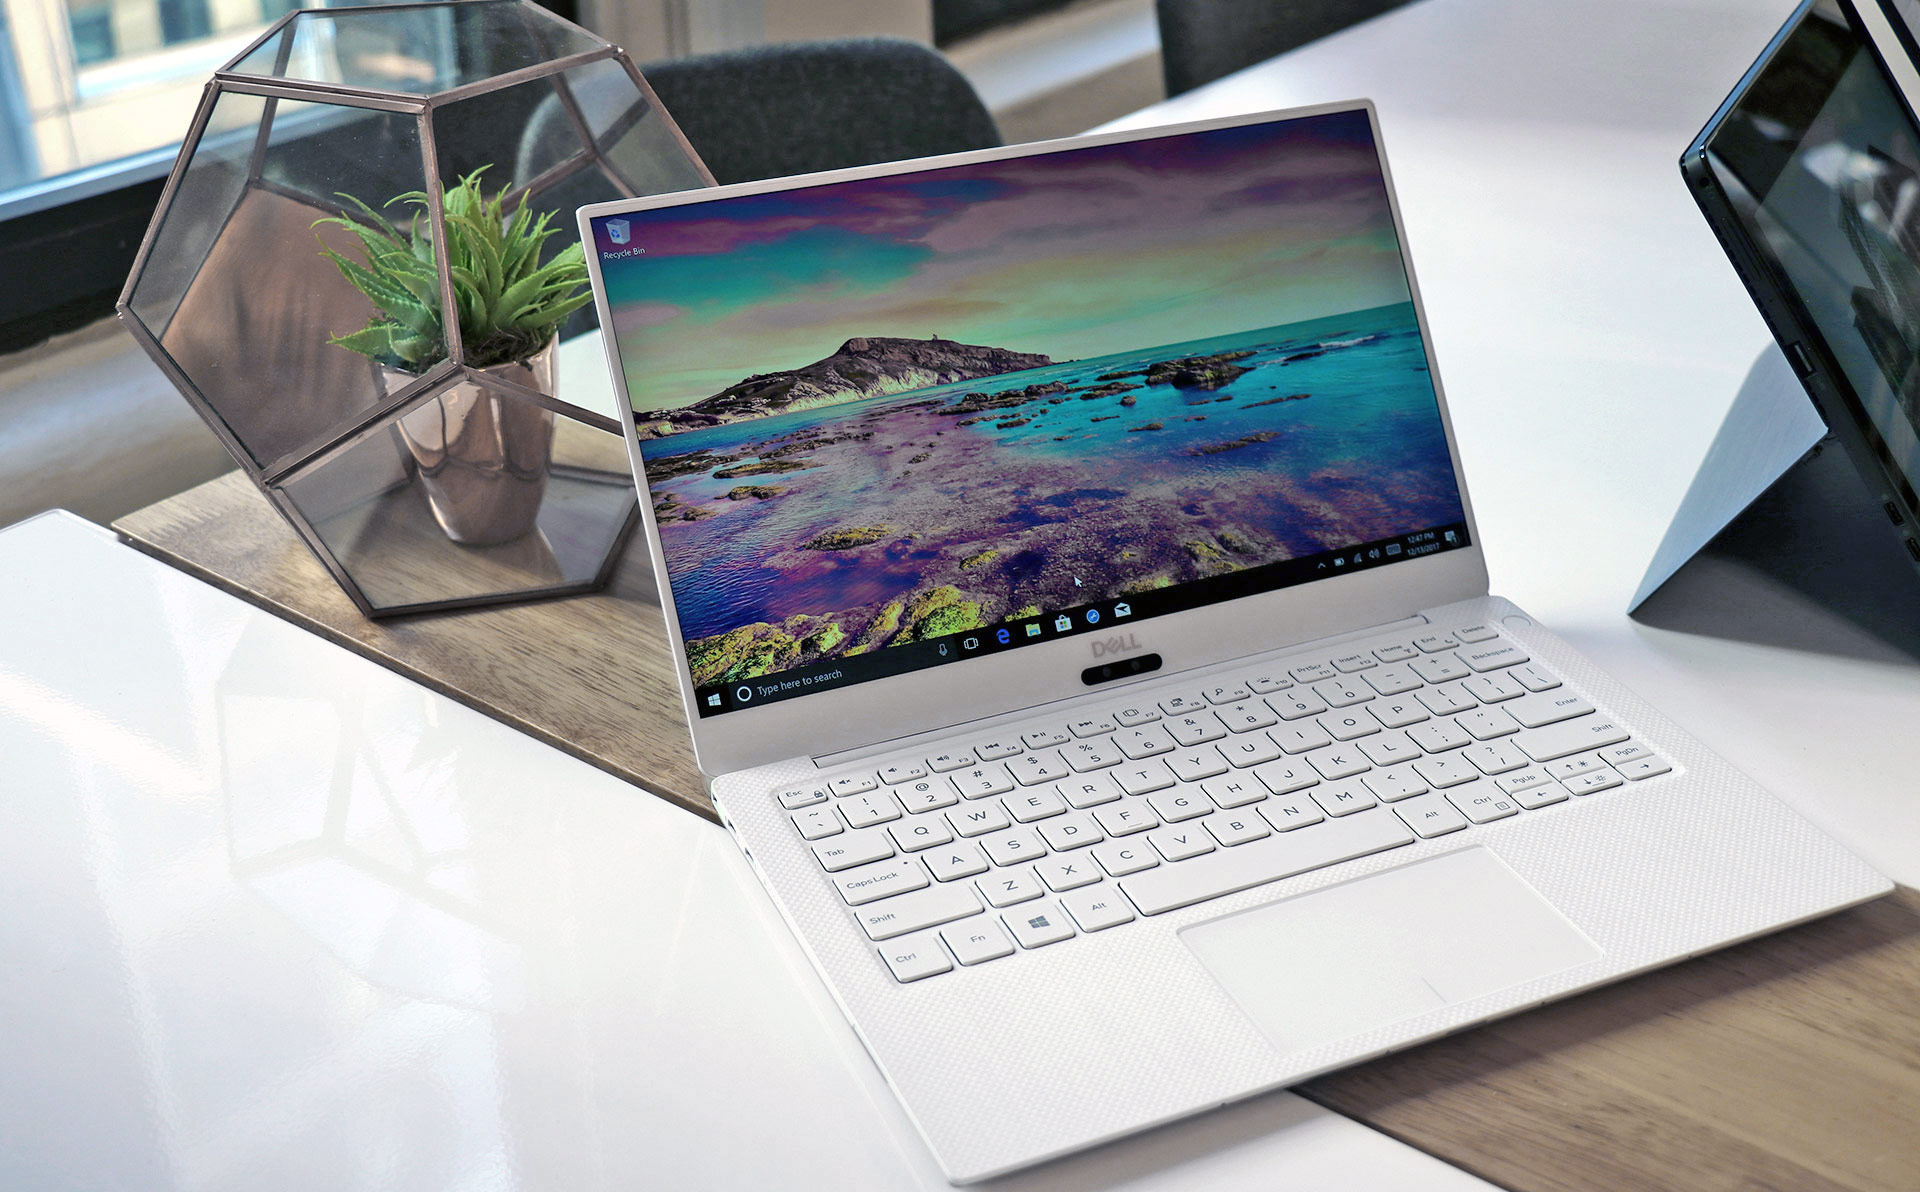 Dell XPS 13 (9370) 2018 Review: White Spun Glass, Killer Looks And Speed